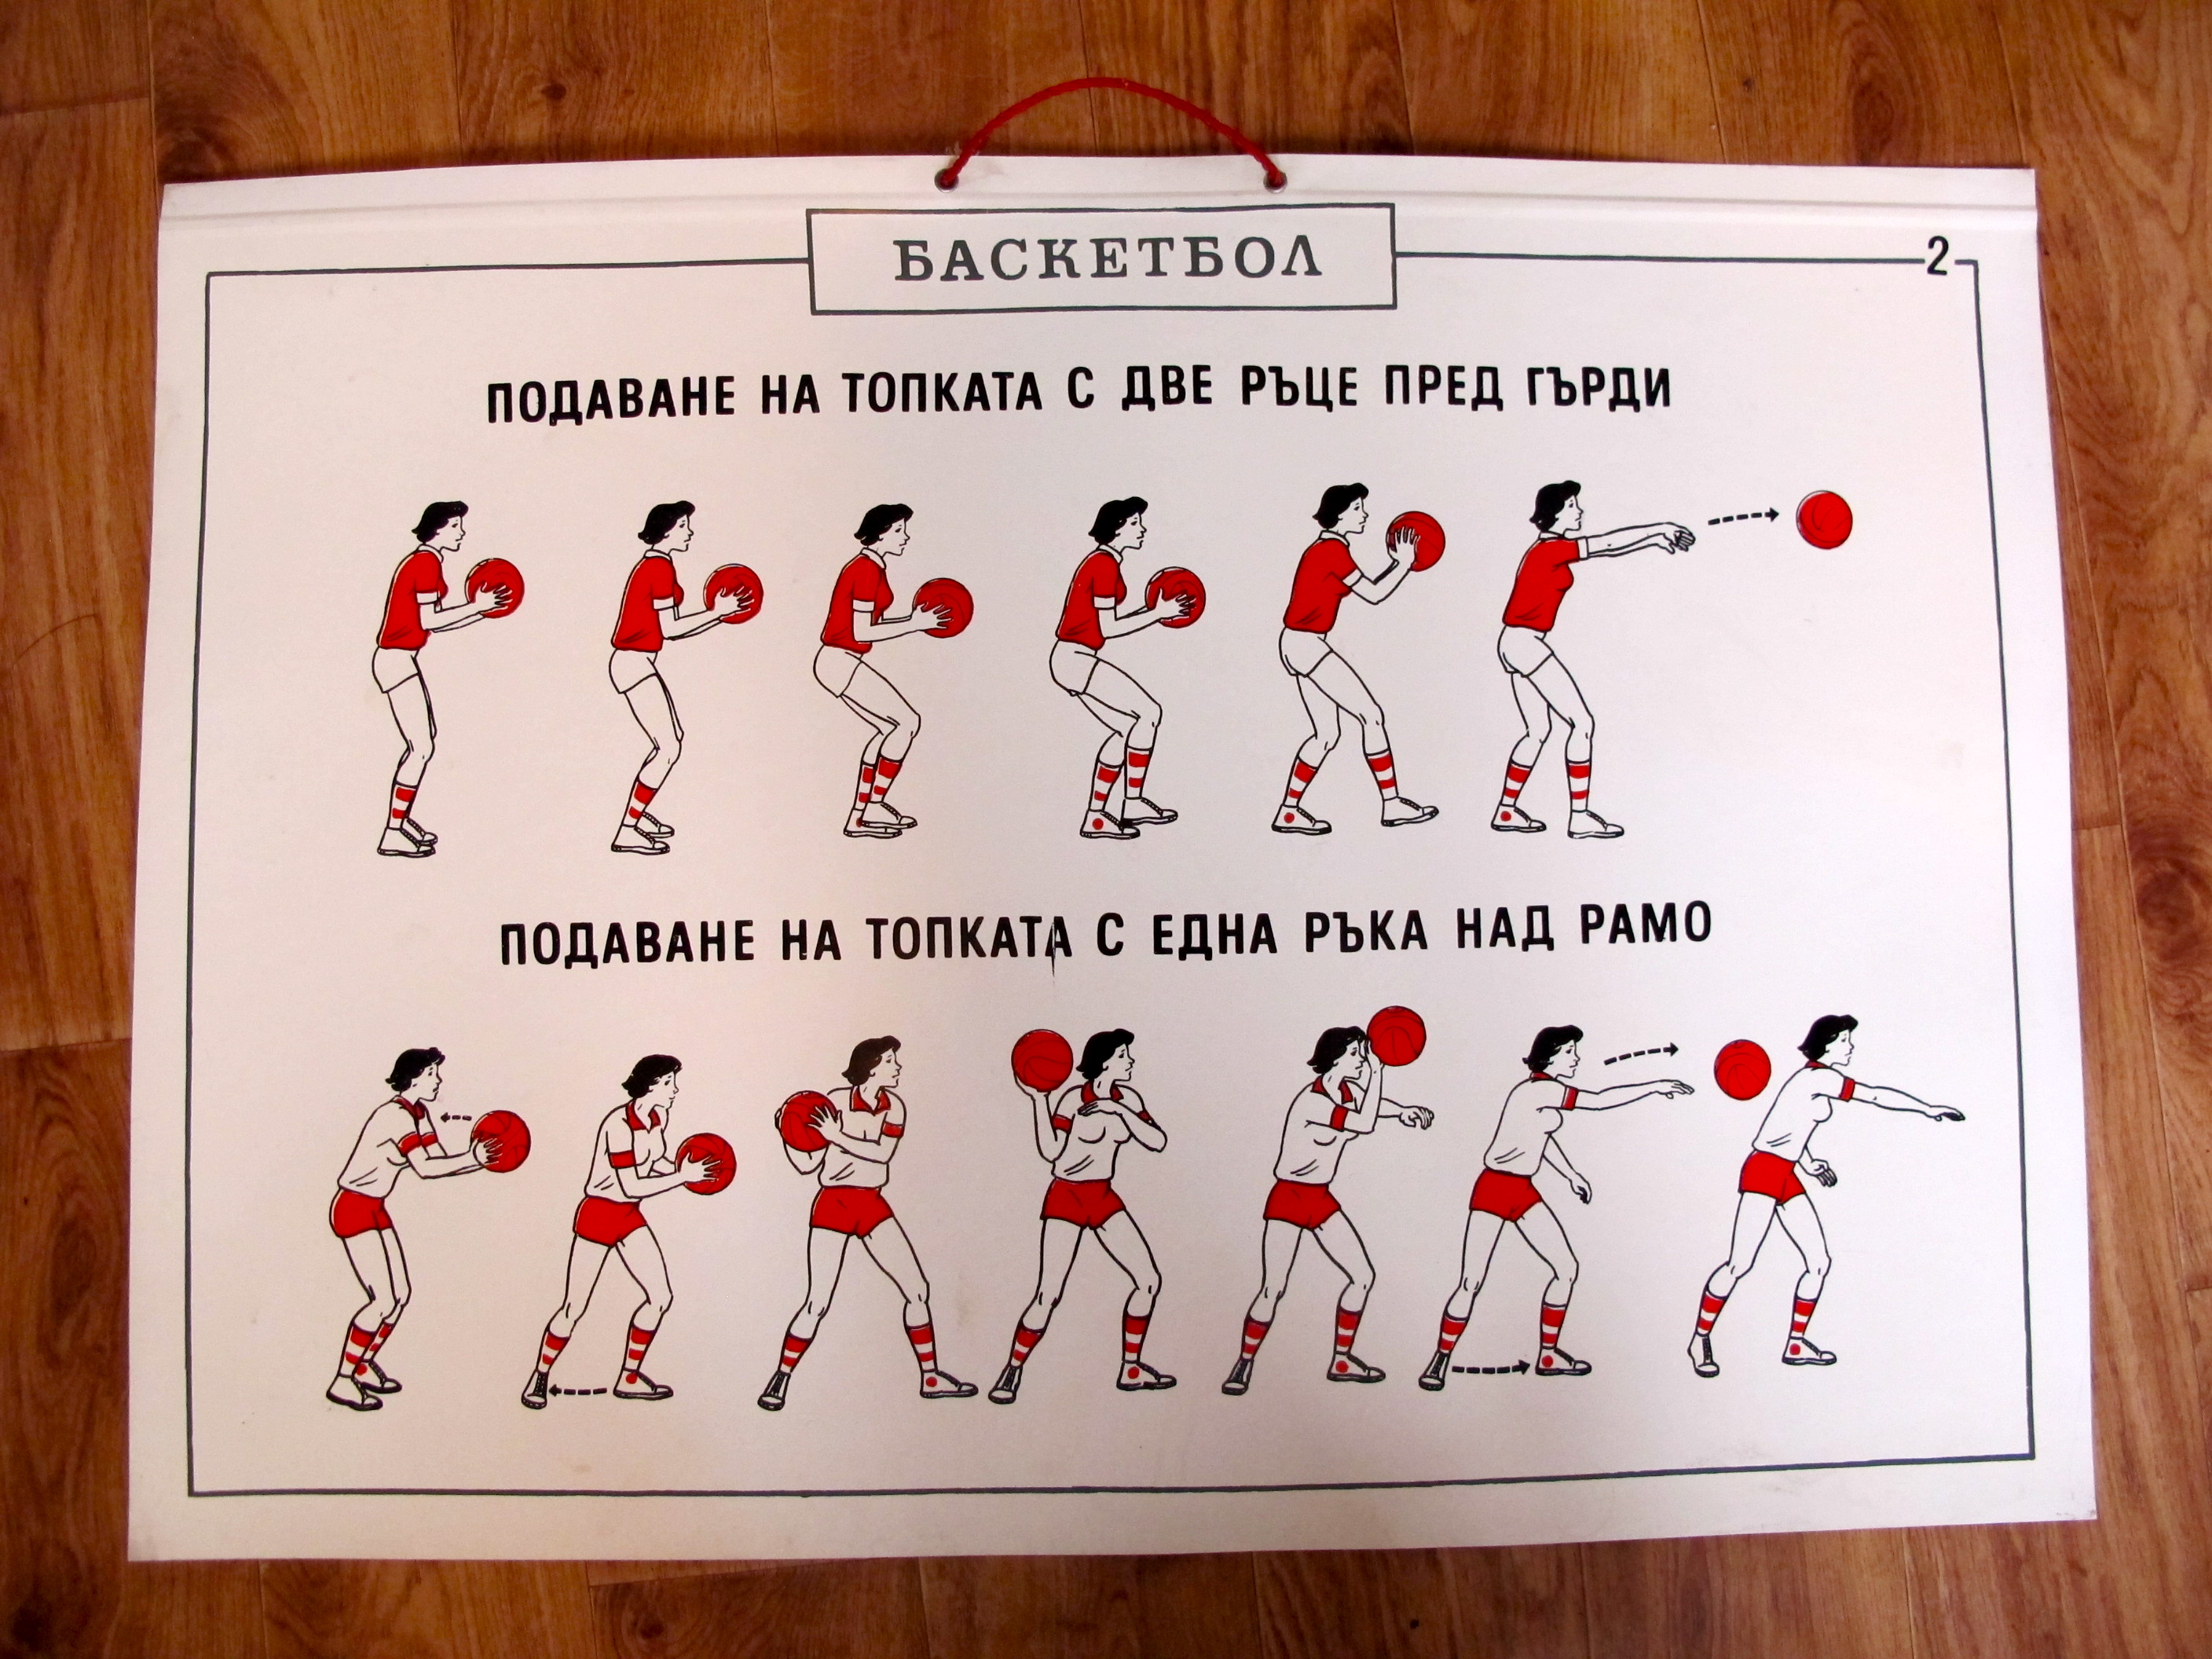 old communist sport poster - basket ball